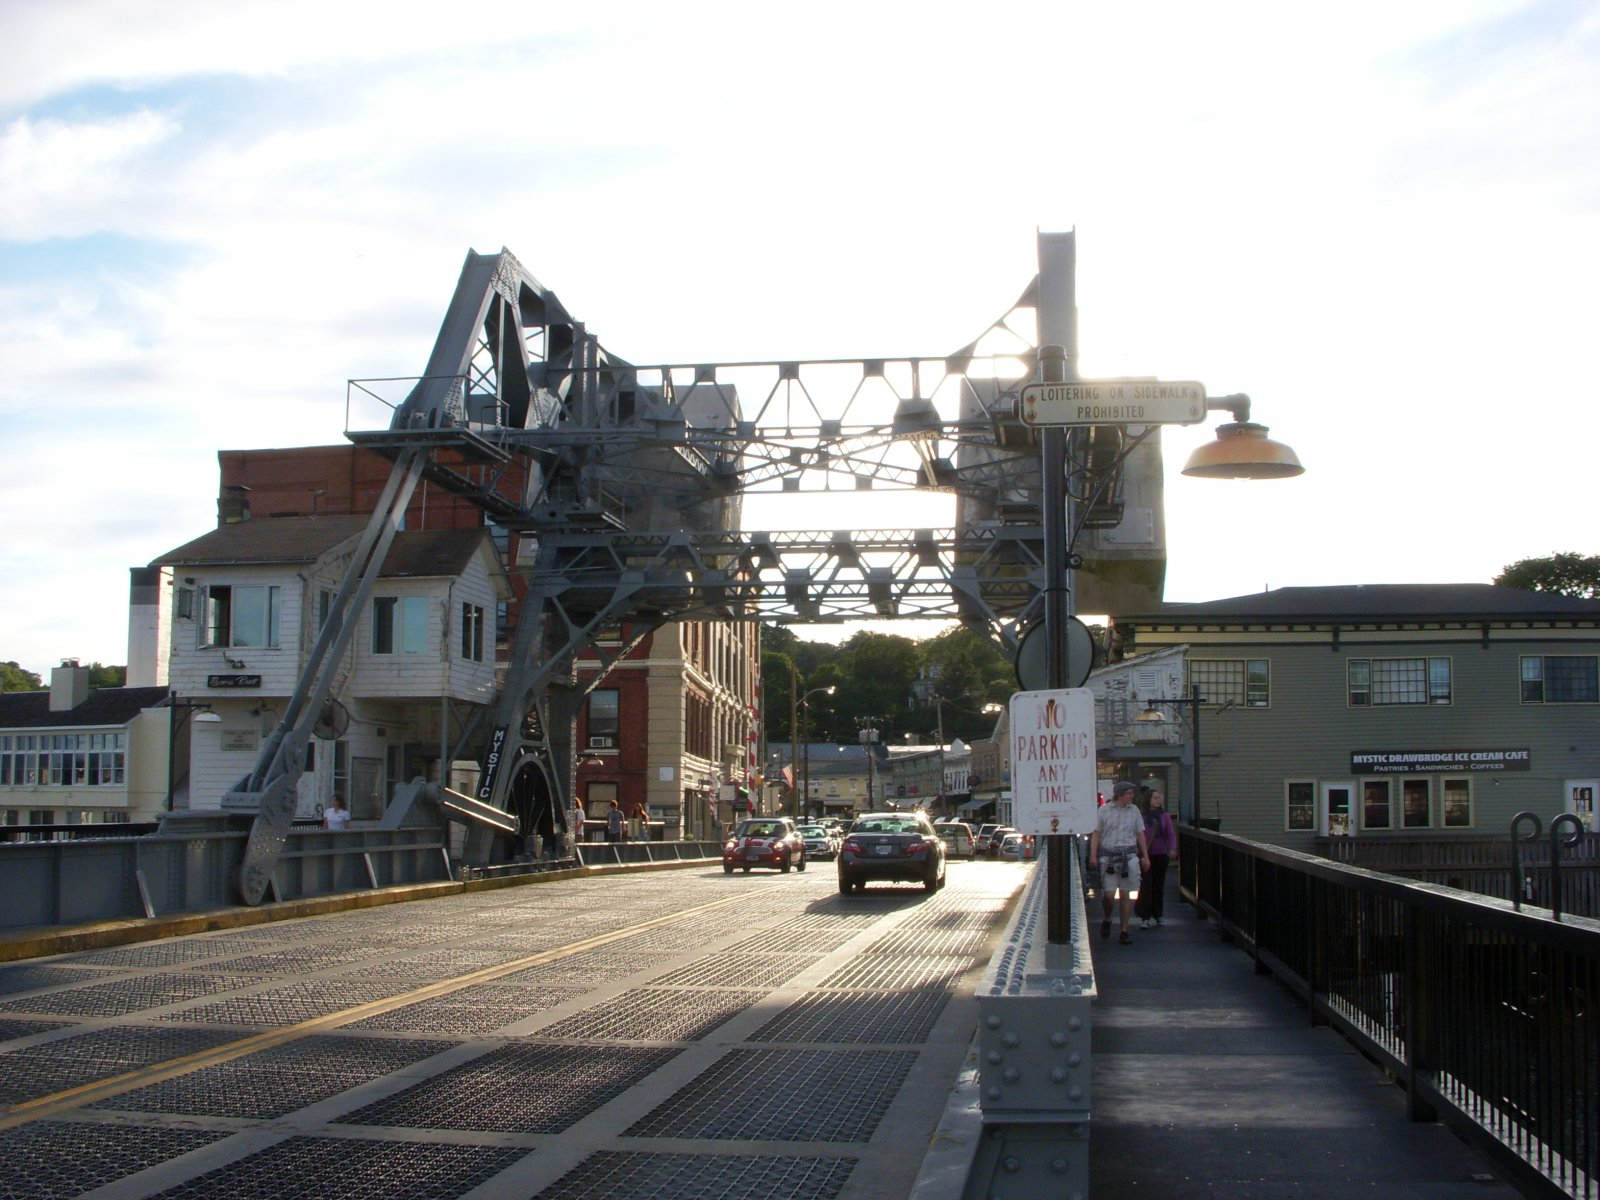 Click image for larger version  Name:Mystic, CT. Aug 2011 040.jpg Views:68 Size:288.9 KB ID:137938